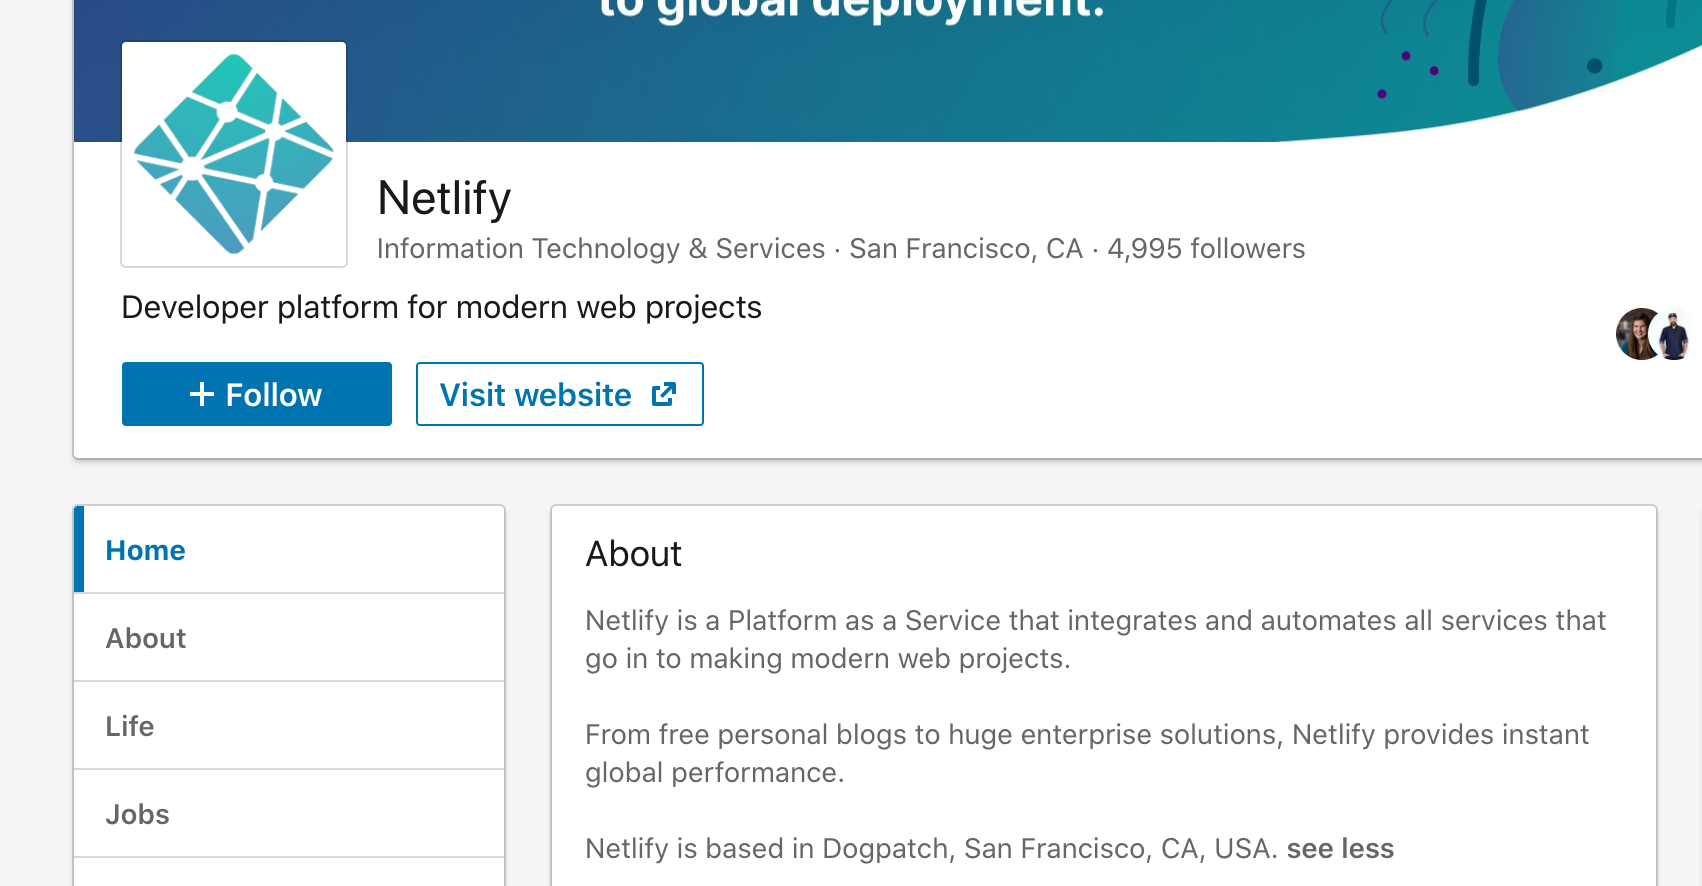 The Netlify company page on LinkedIn describes it as both a Developer Platform and a Platform as a Service, and does not mention Jamstack.